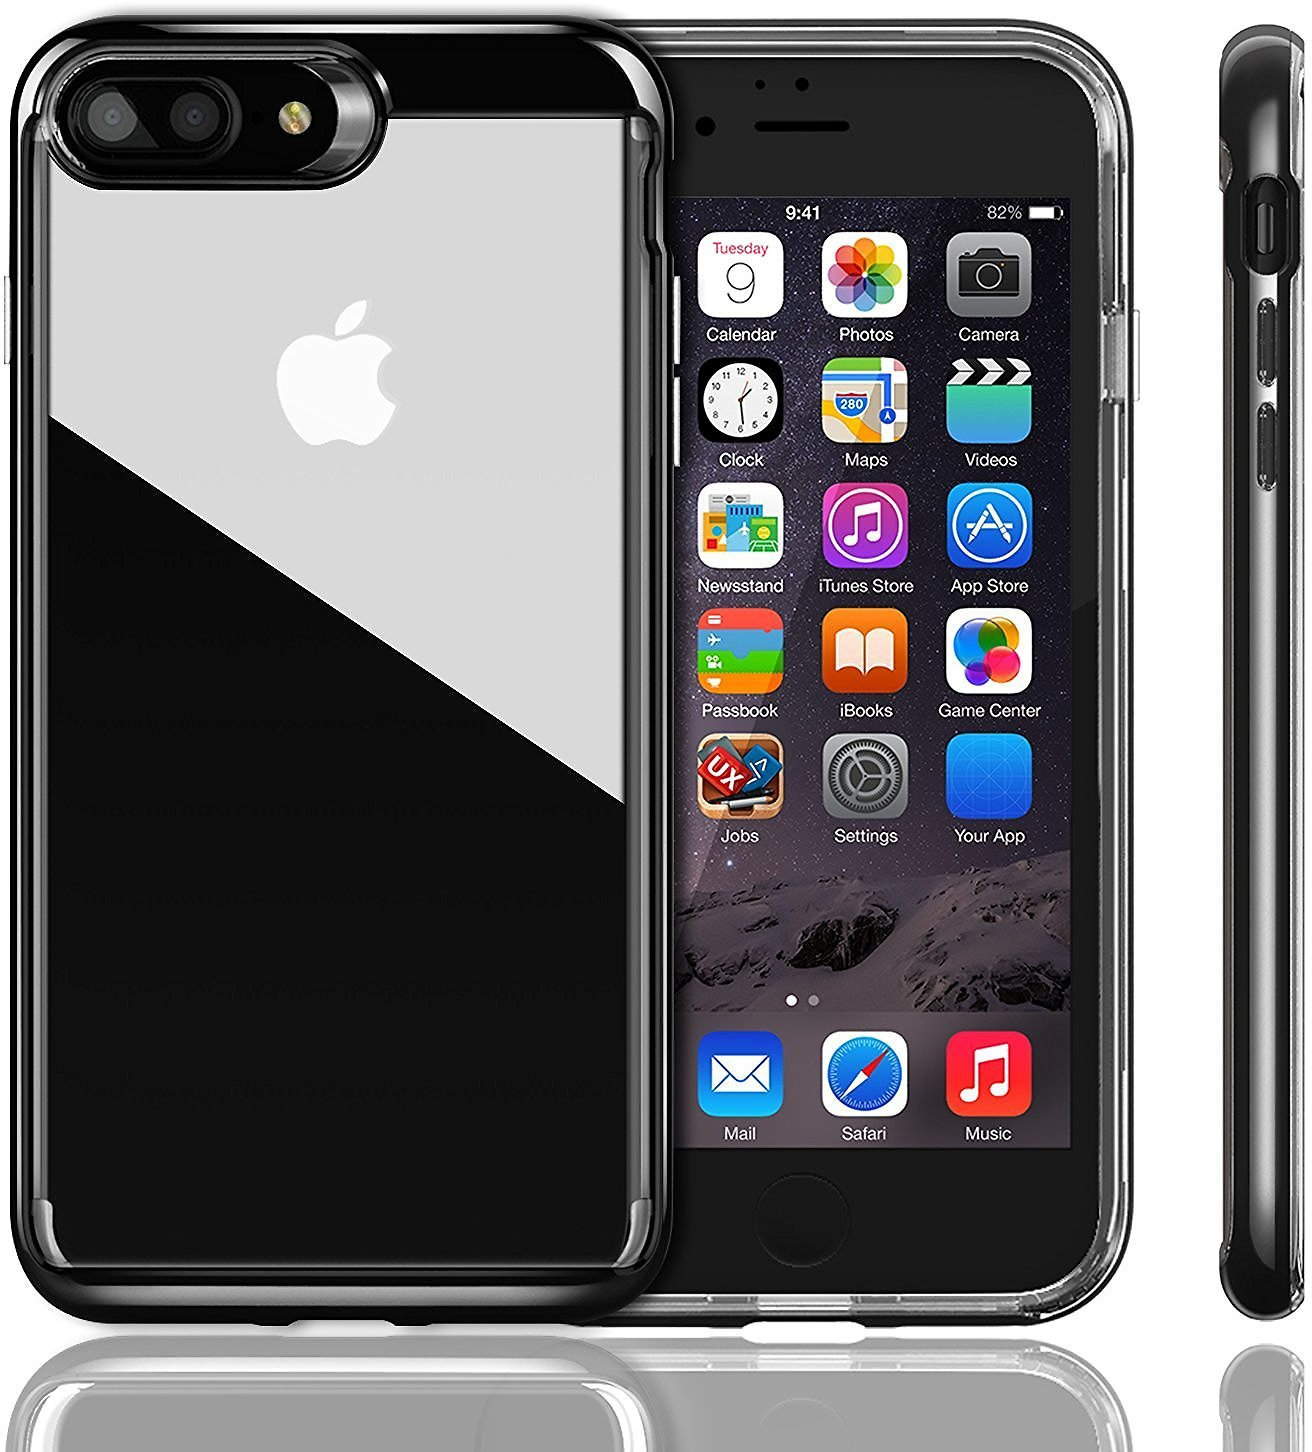 iphone 7 tpu case on sale for 3 with coupon cop these. Black Bedroom Furniture Sets. Home Design Ideas